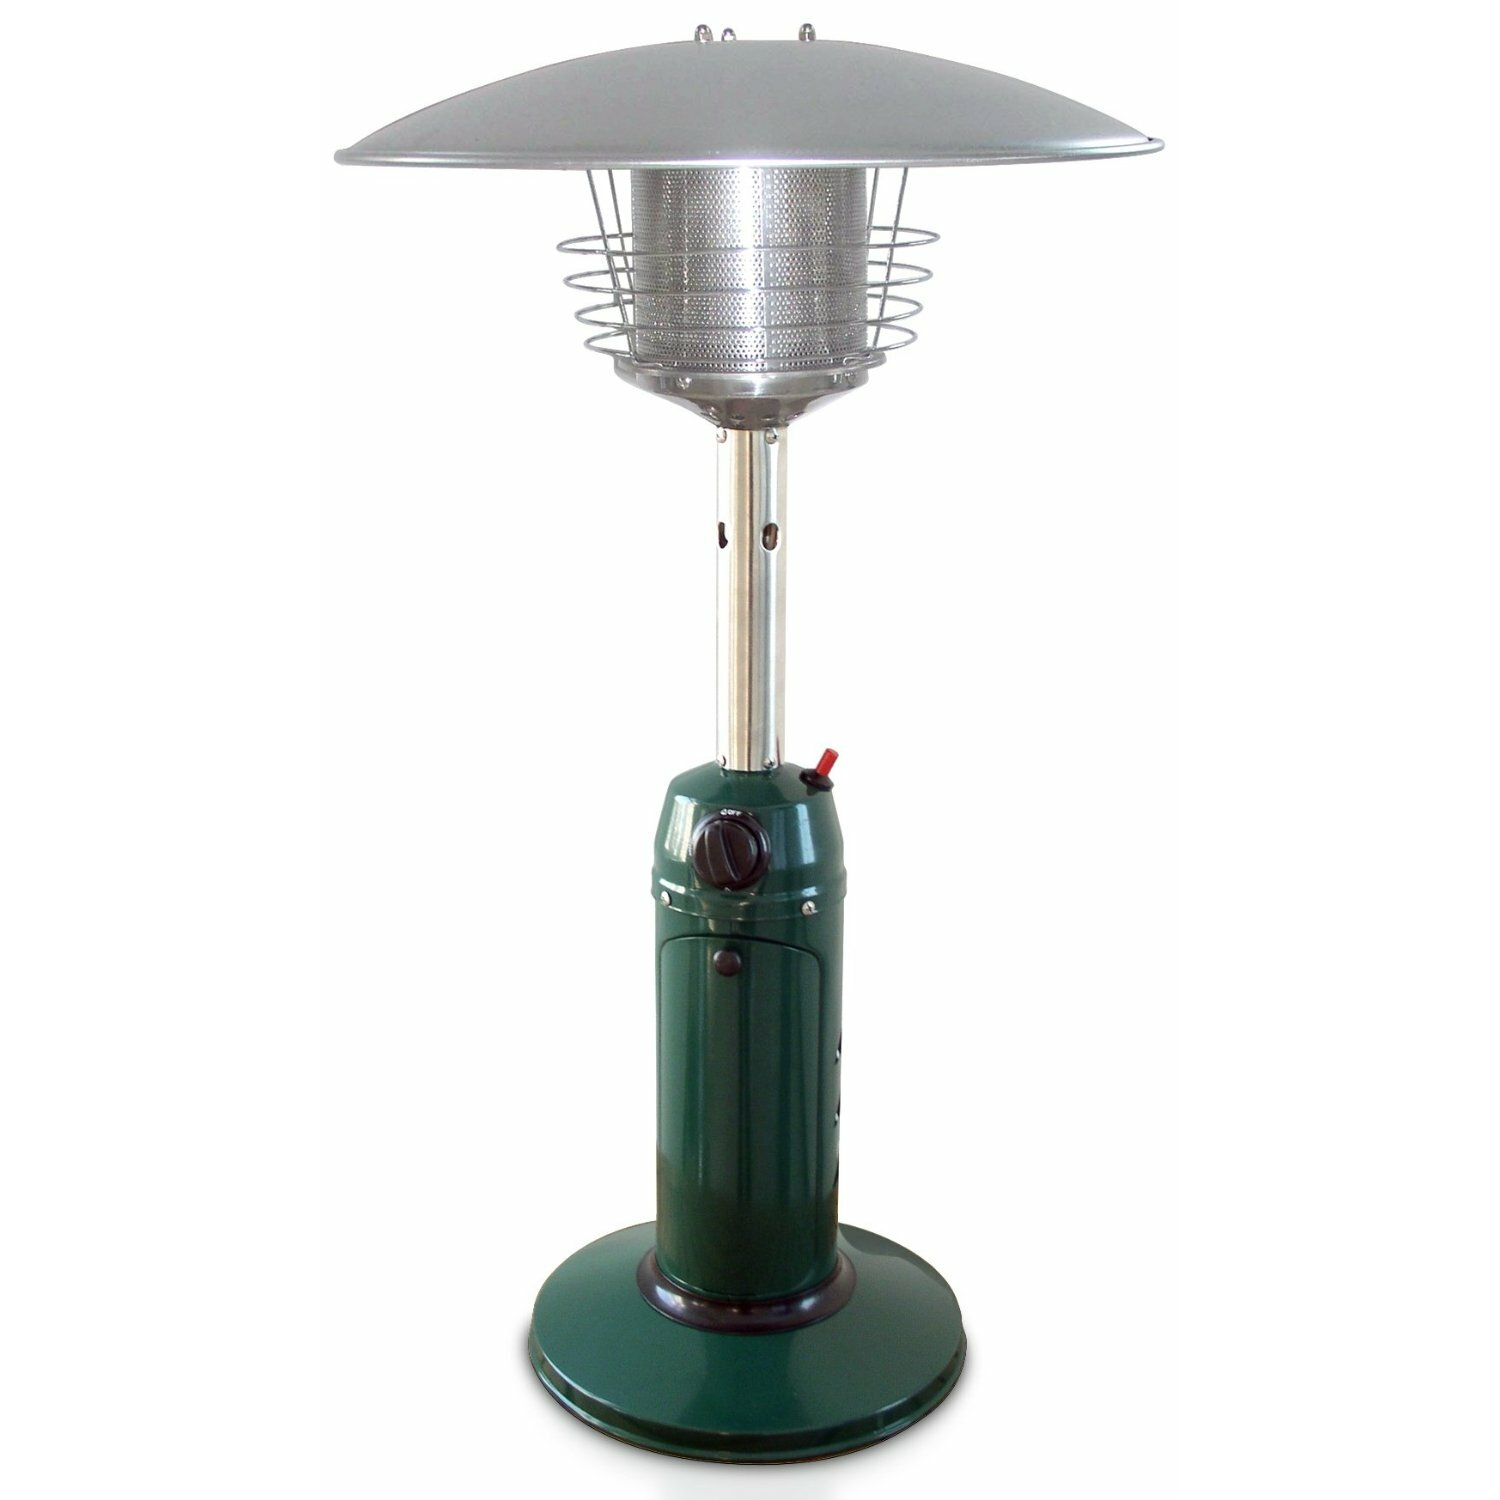 garden radiance tabletop propane patio heater